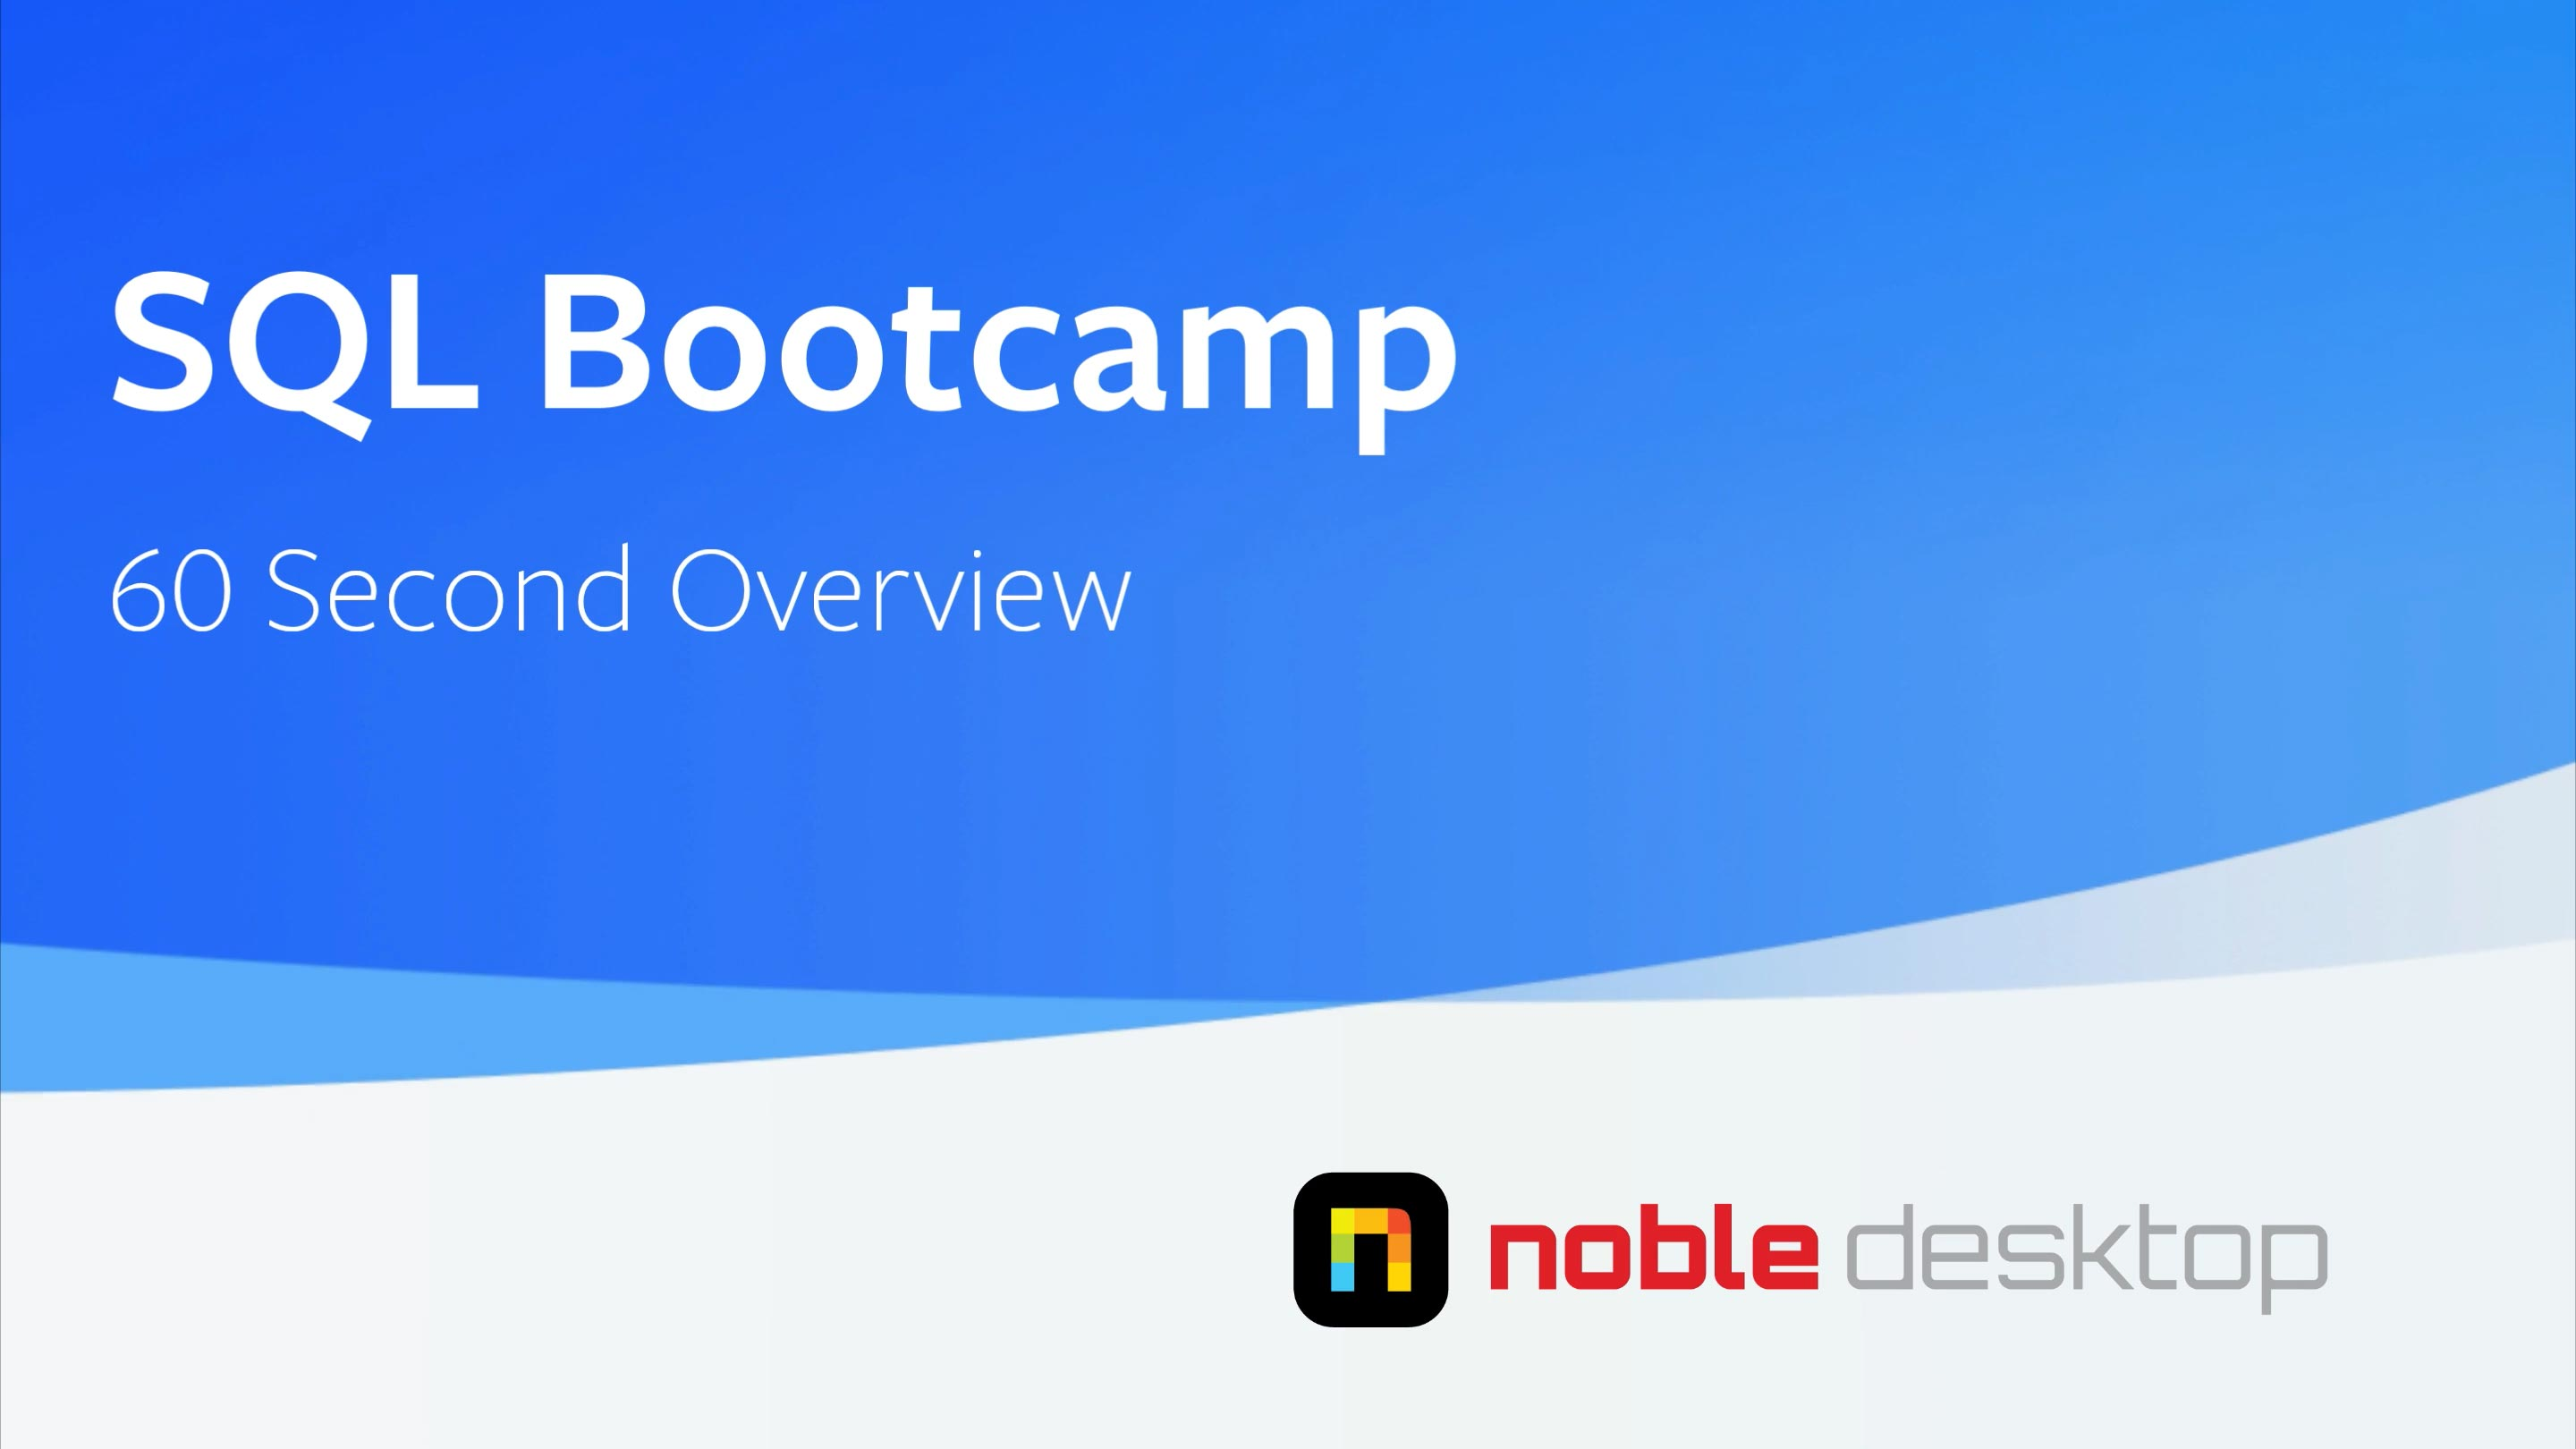 SQL Bootcamp Class Overview